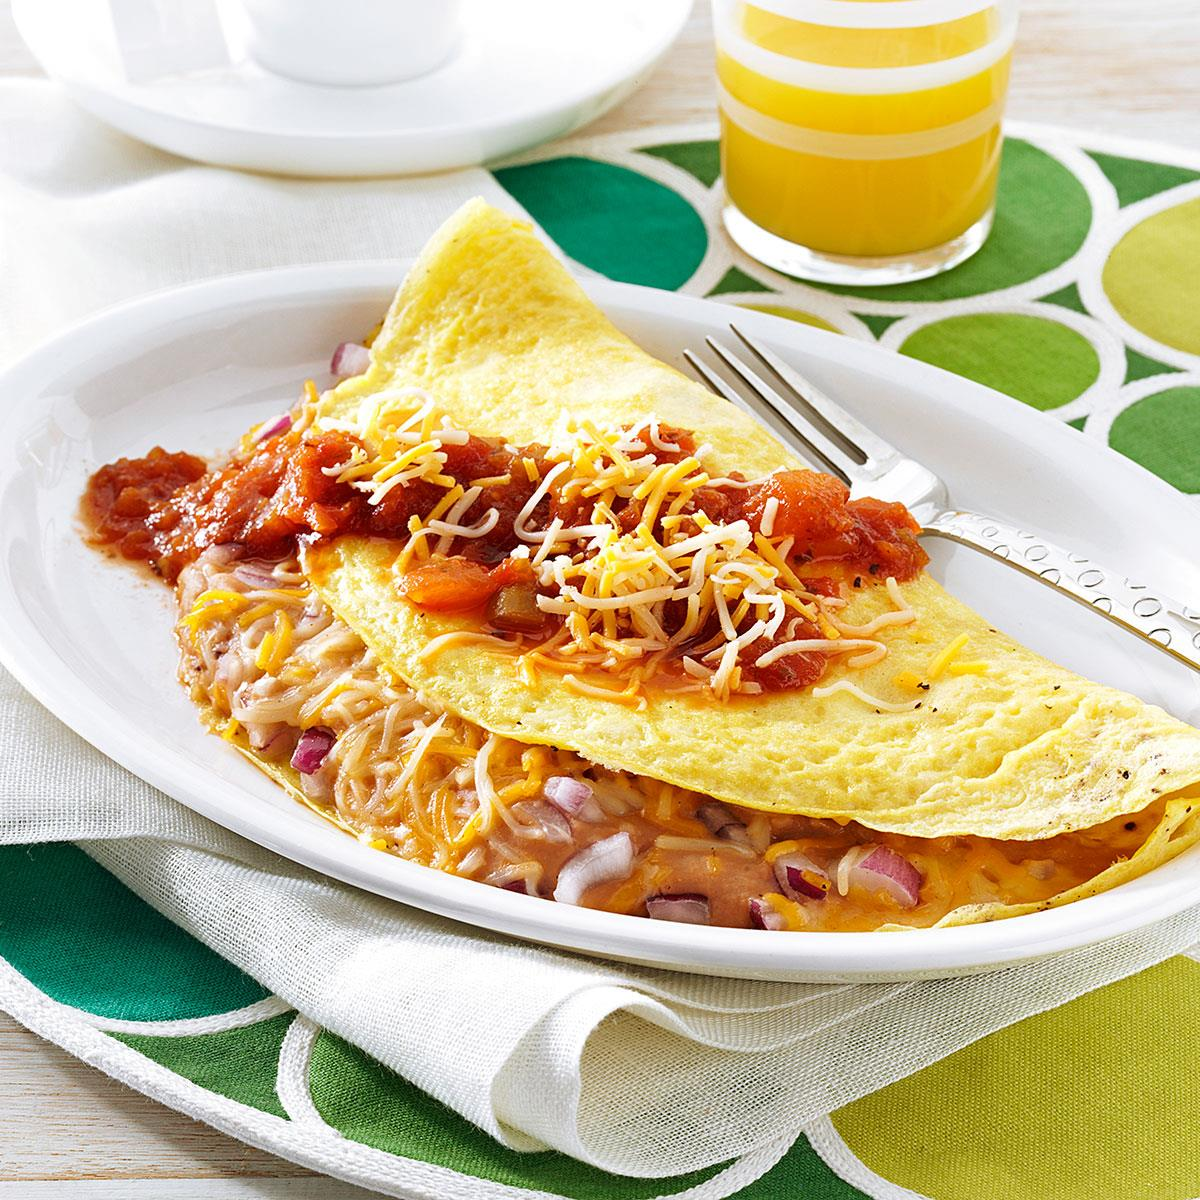 Make a delicious boiled omelette in the package